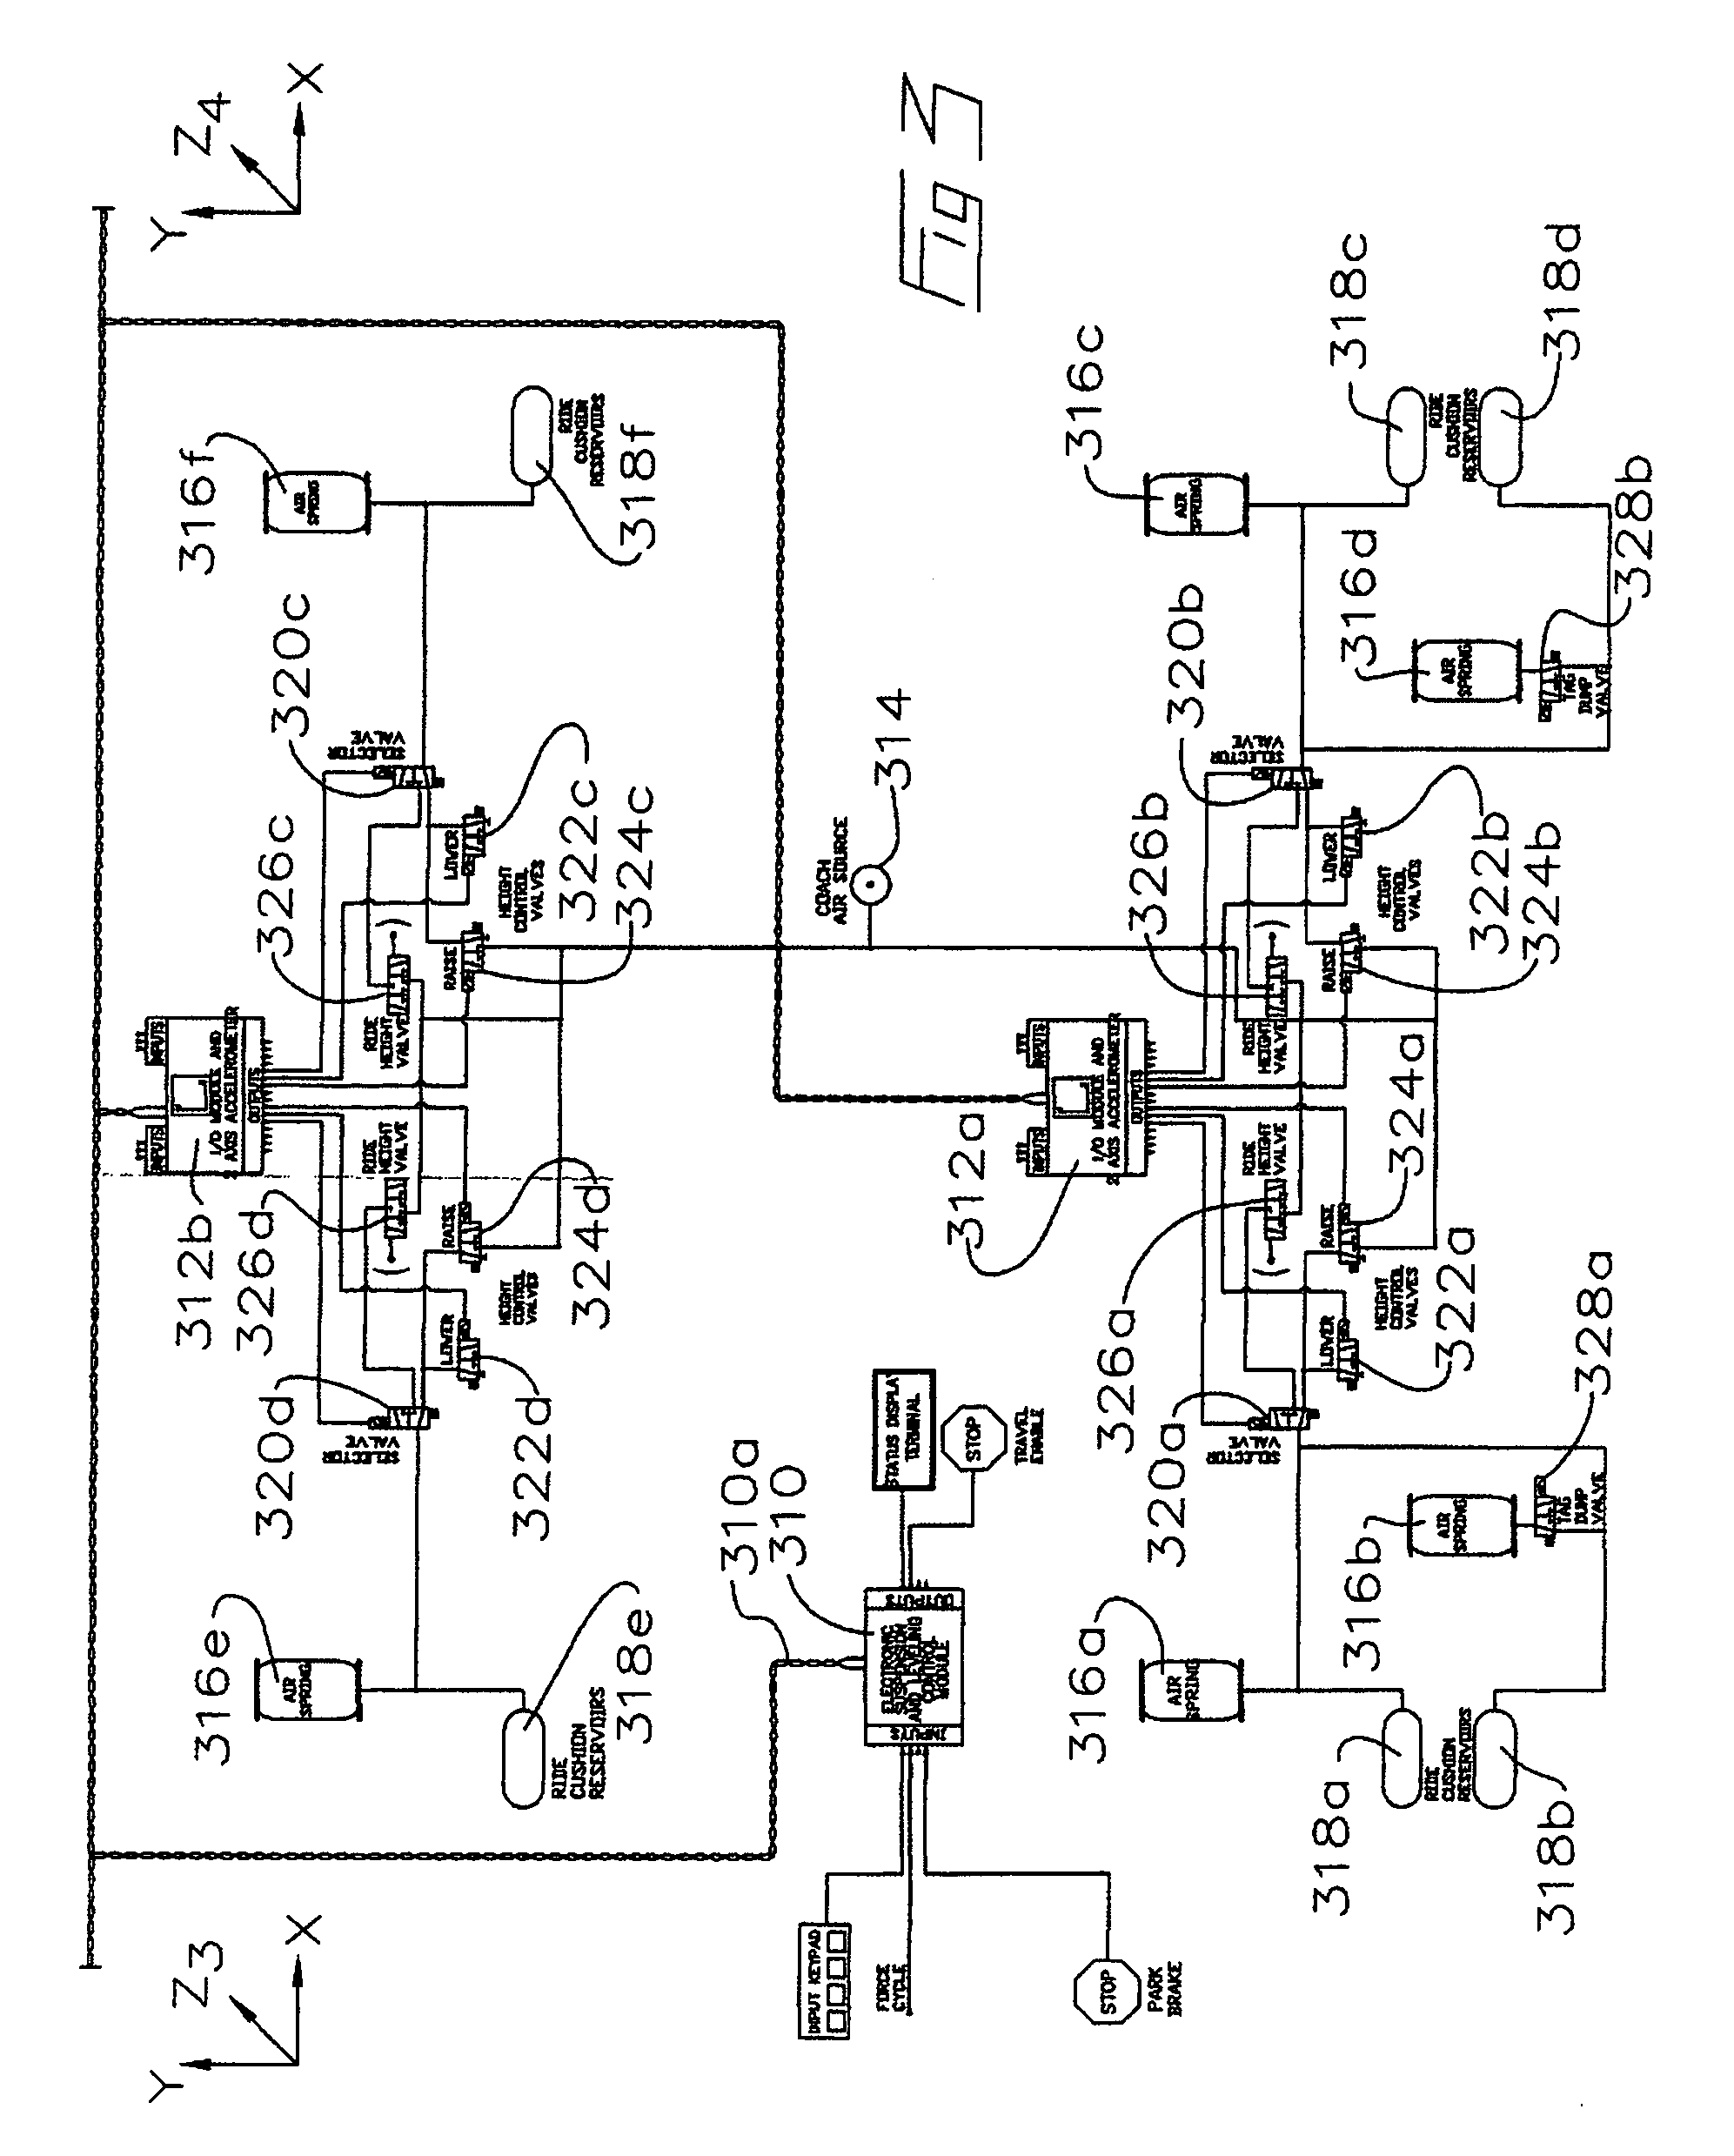 Sterling Jake Brake Wiring Diagram moreover AY2w 17107 additionally RepairGuideContent in addition 2006 Chevy Impala Wiring Diagram And 0996b43f807d9255 Gif With as well Brakes. on sterling truck air brake schematic